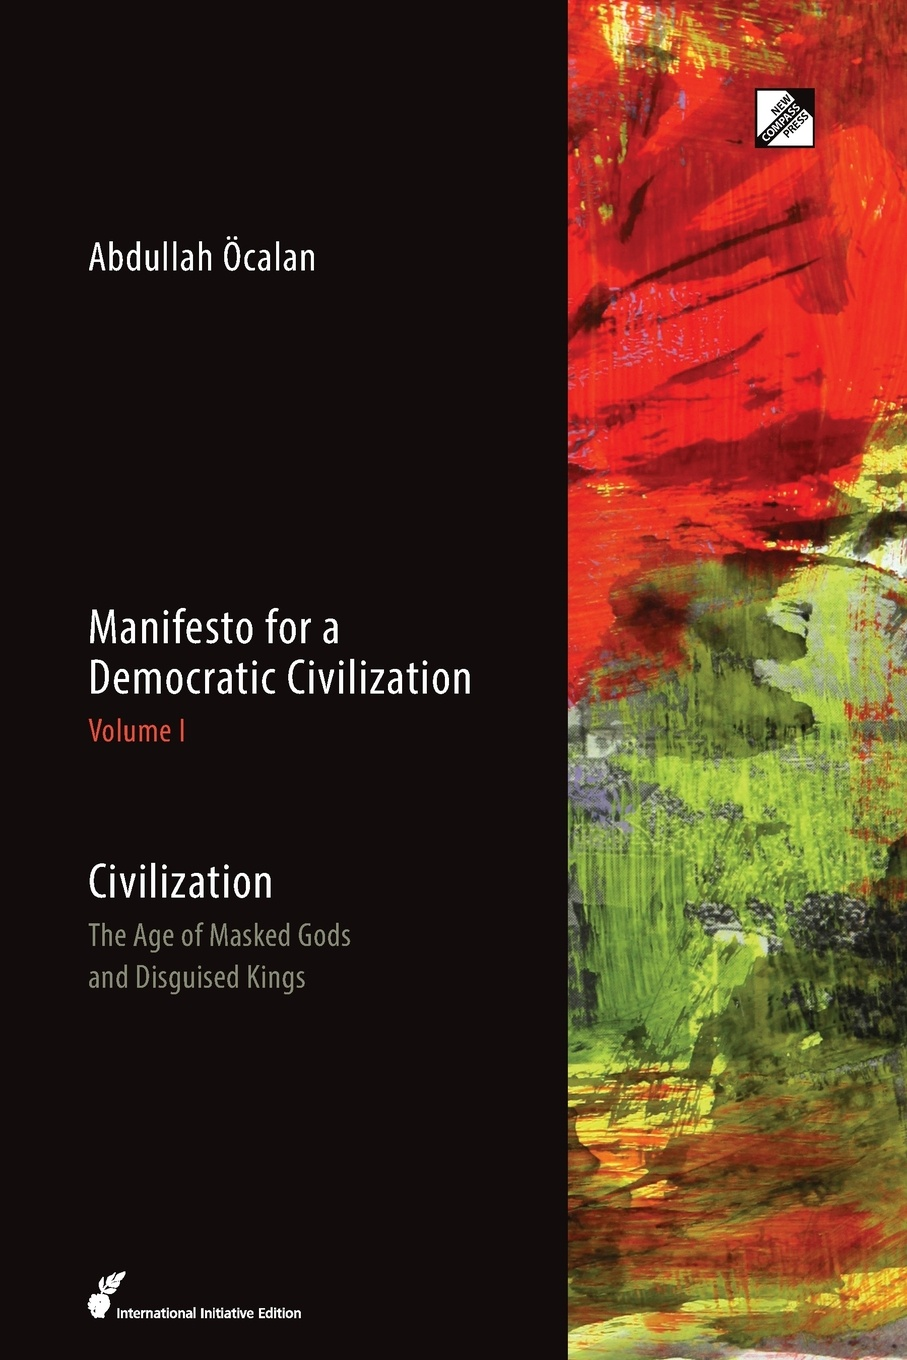 Abdullah Öcalan, Havin Guneser Civilization. The Age of Masked Gods and Disguised Kings